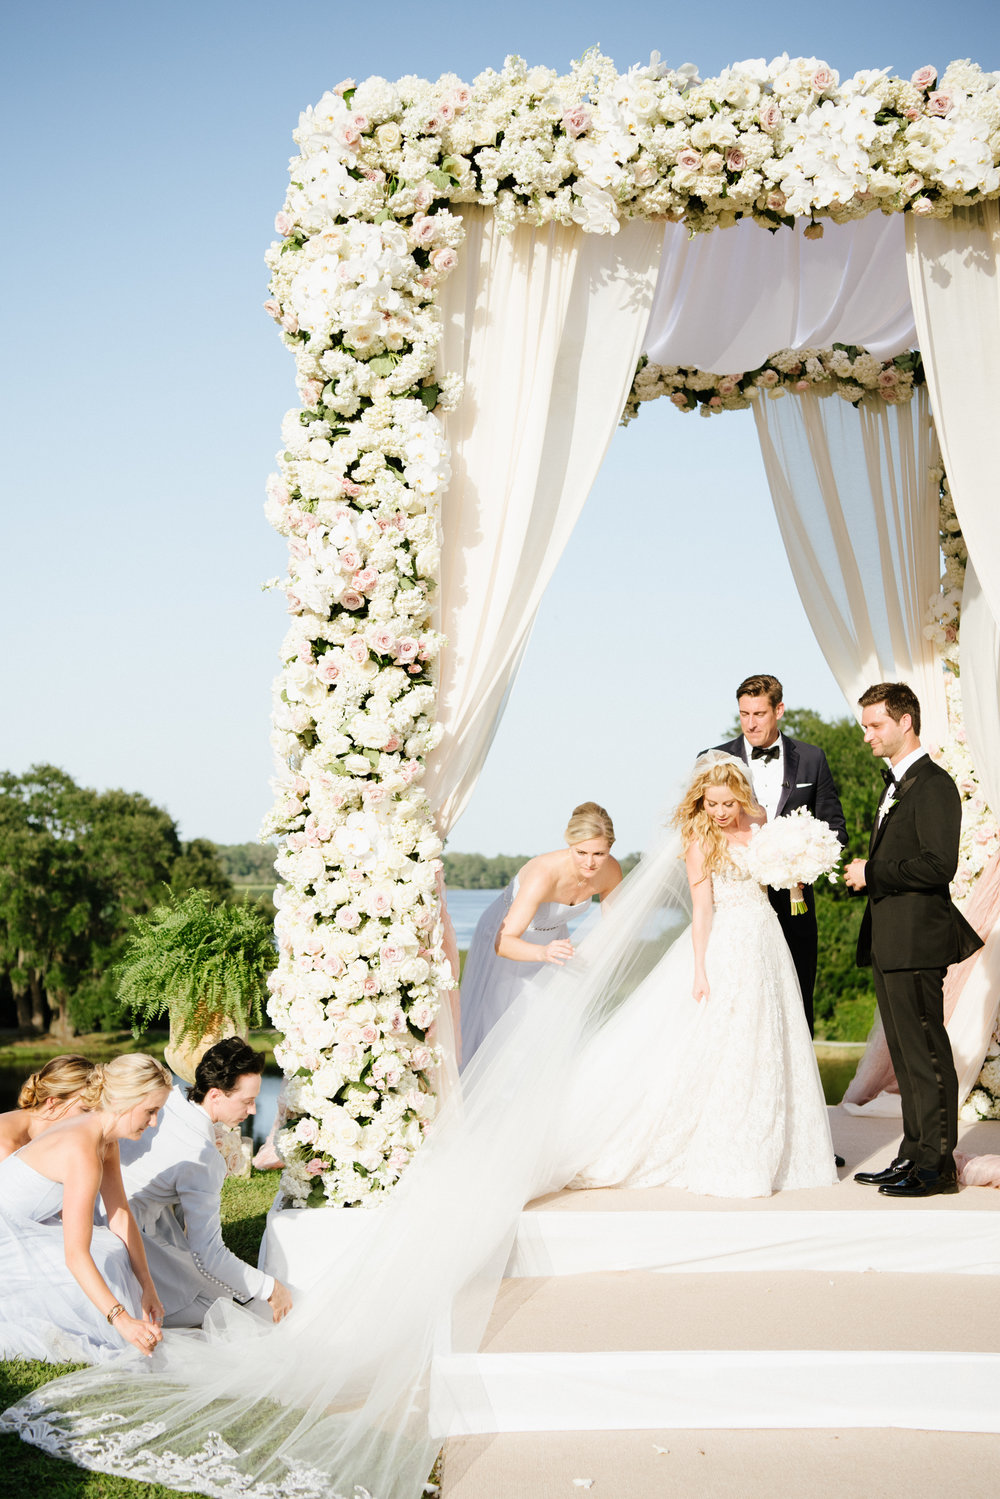 Johnny Weir helps Tara Lipinski with her veil on her wedding day; Sylvie Gil Photography